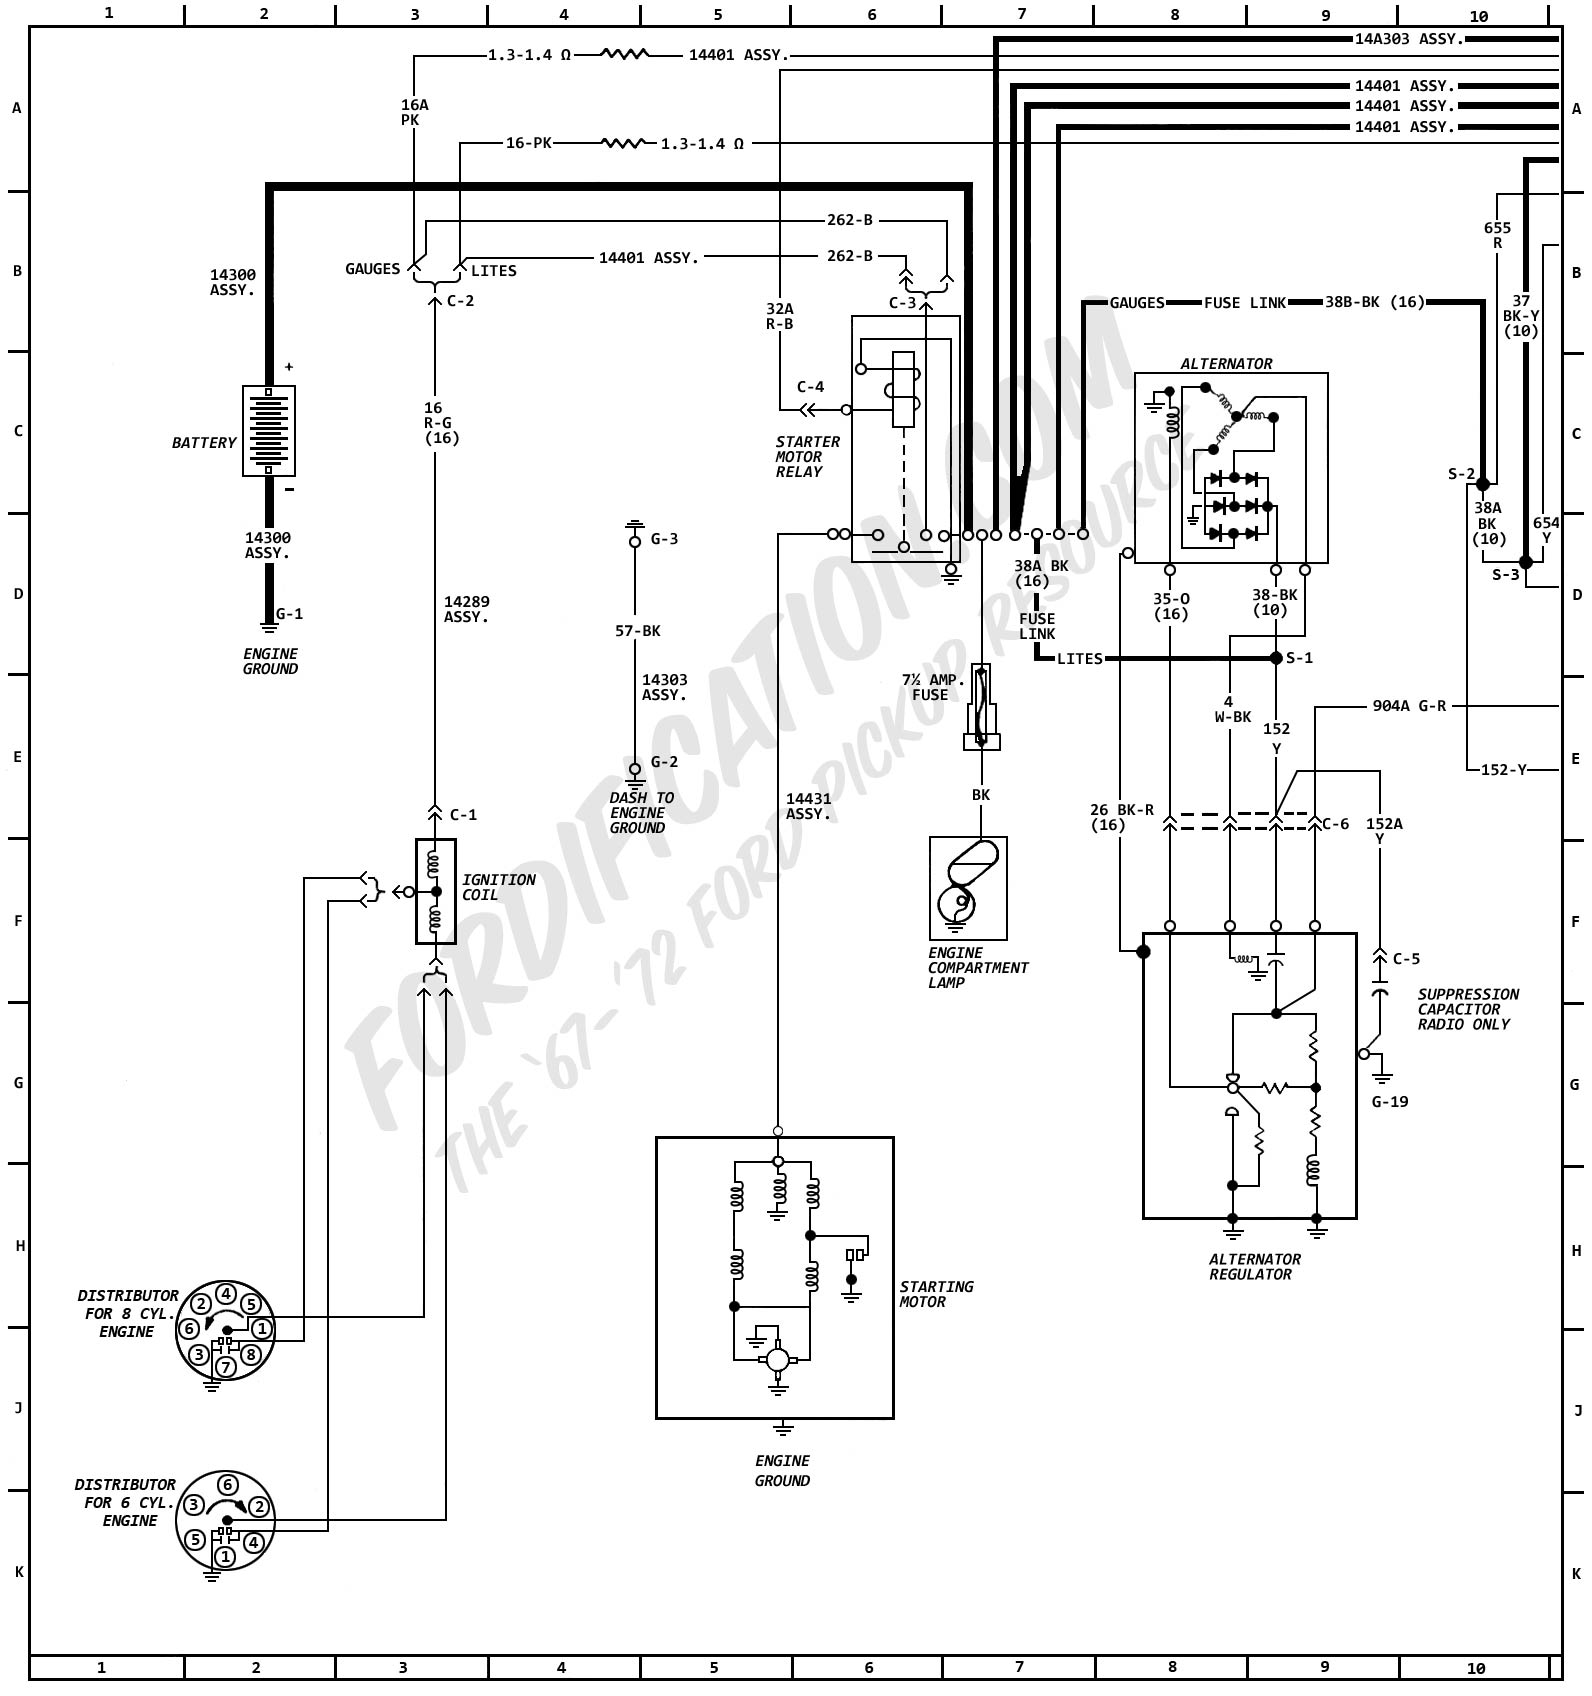 1987 Ford L8000 Wiring Diagram 30 Images Truck Diagrams 1972masterwiring 01 1972 Fordification Com At Cita